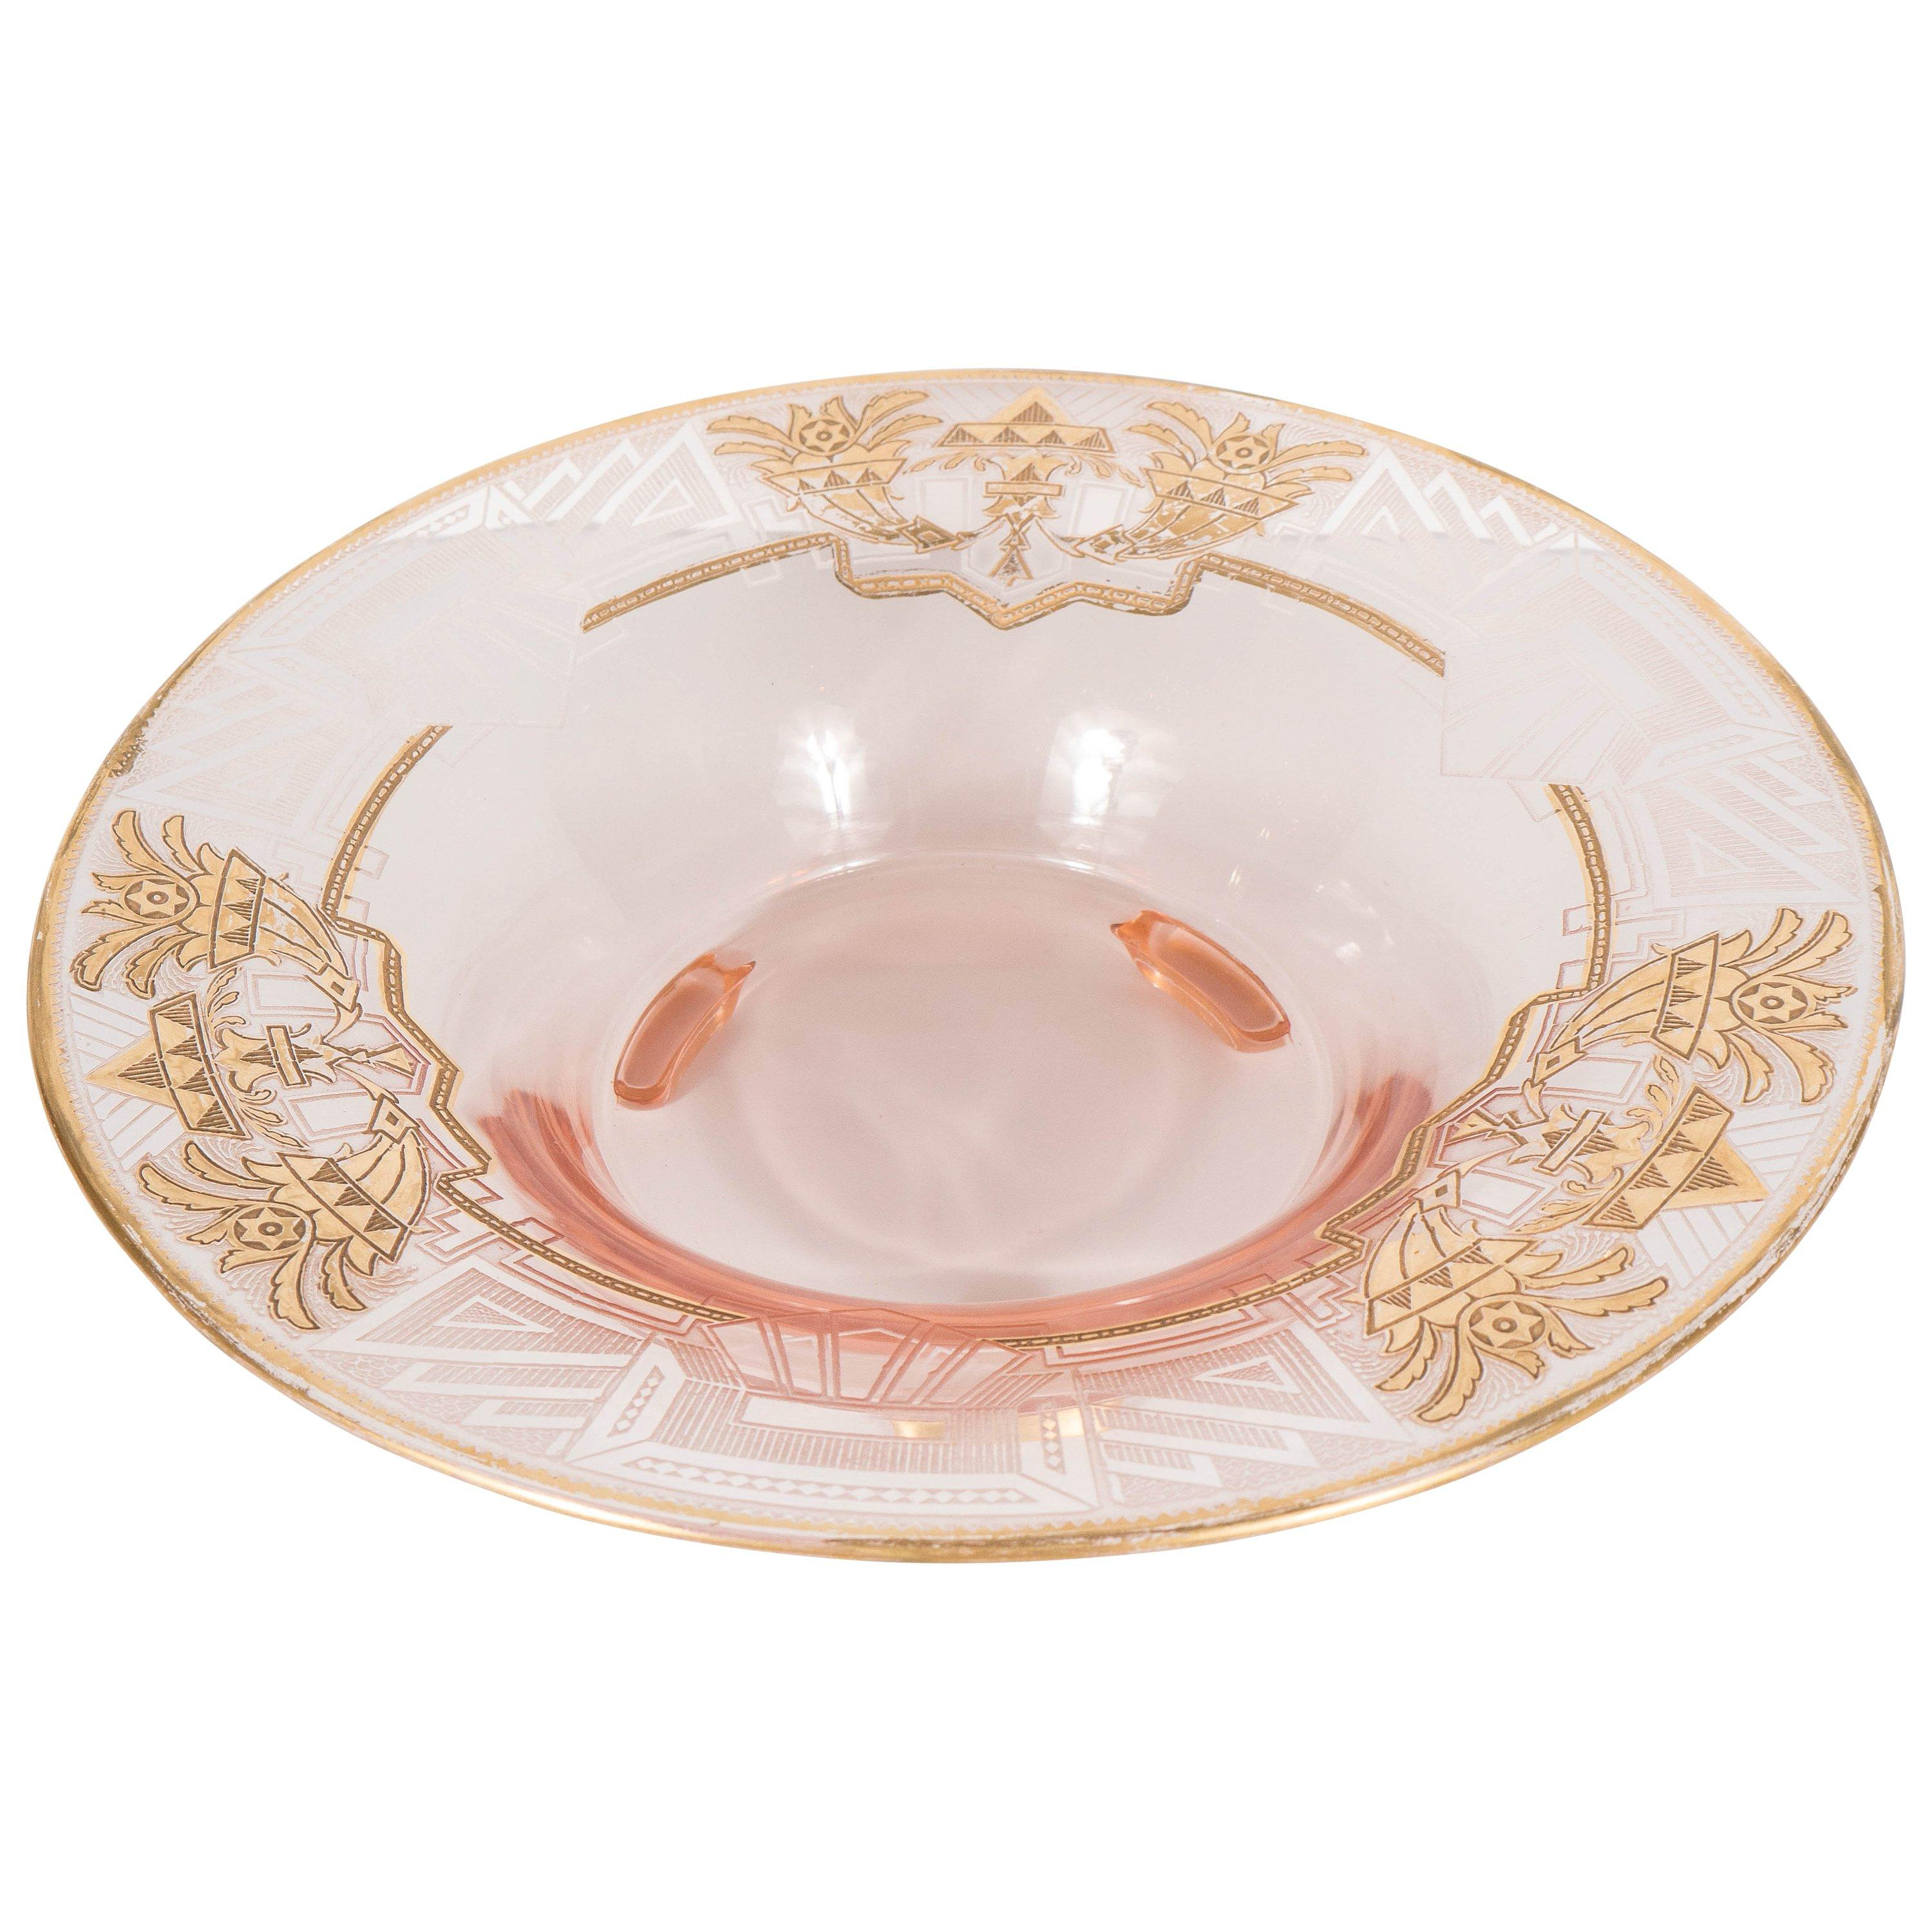 Art Deco Relief Etched and 24-Karat Gilt Relief Bowl